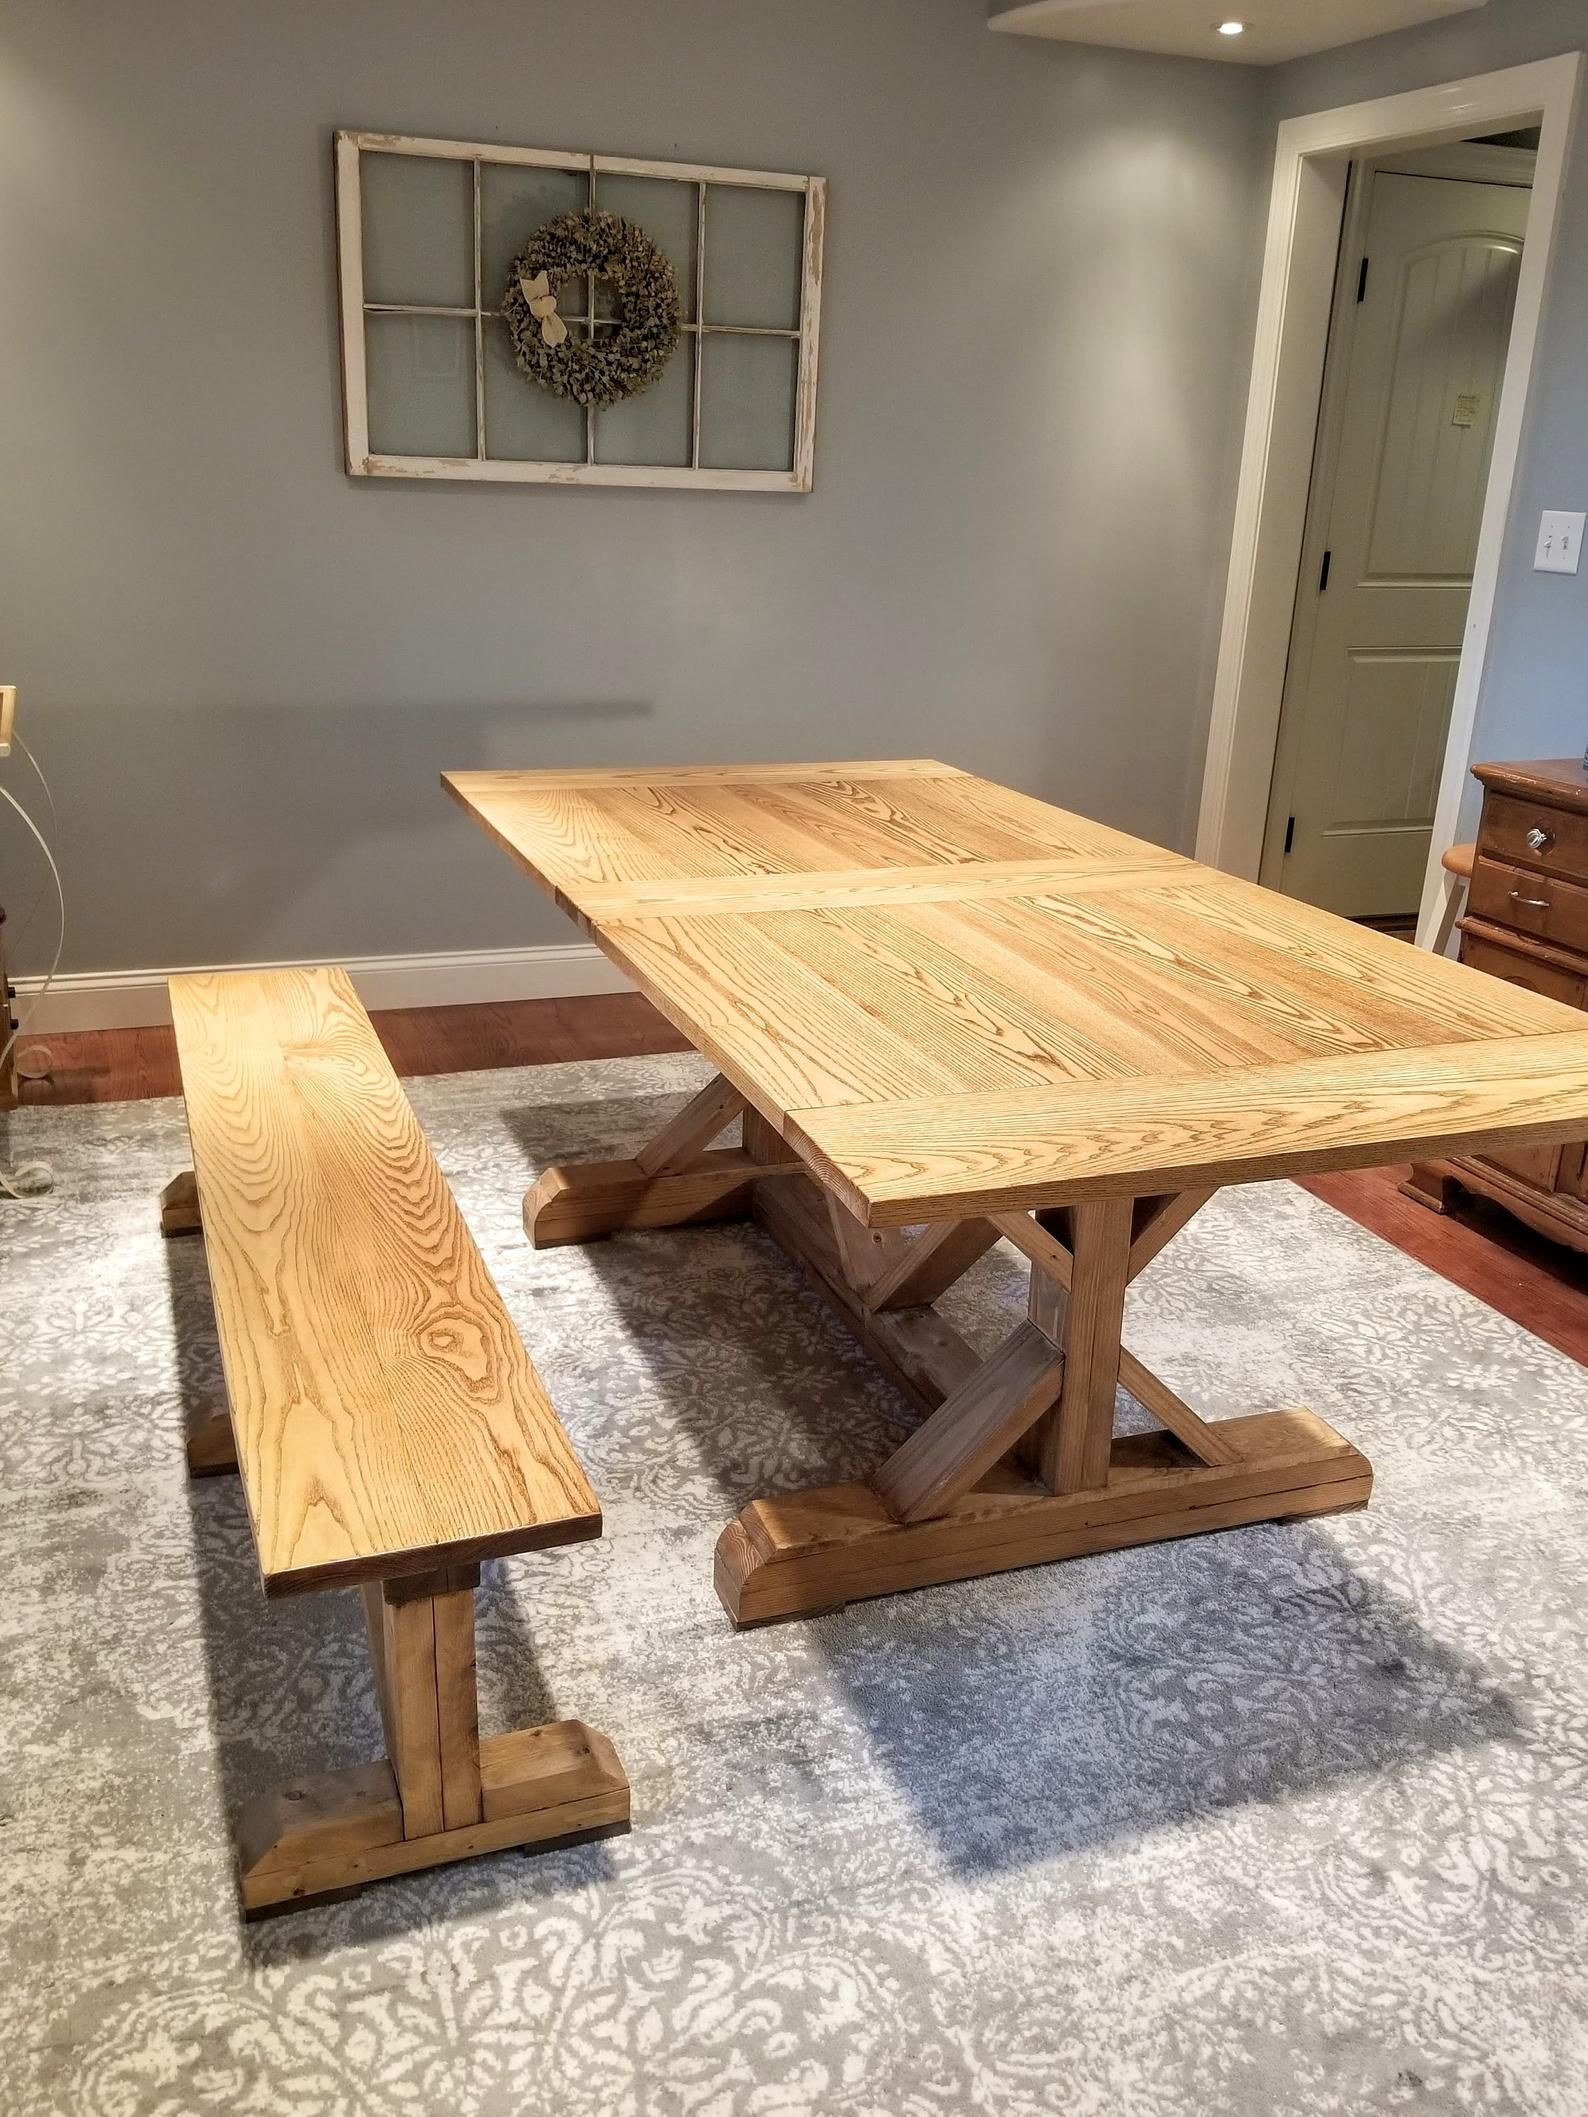 Expandable Farmhouse Table with Leaf Storage (With images